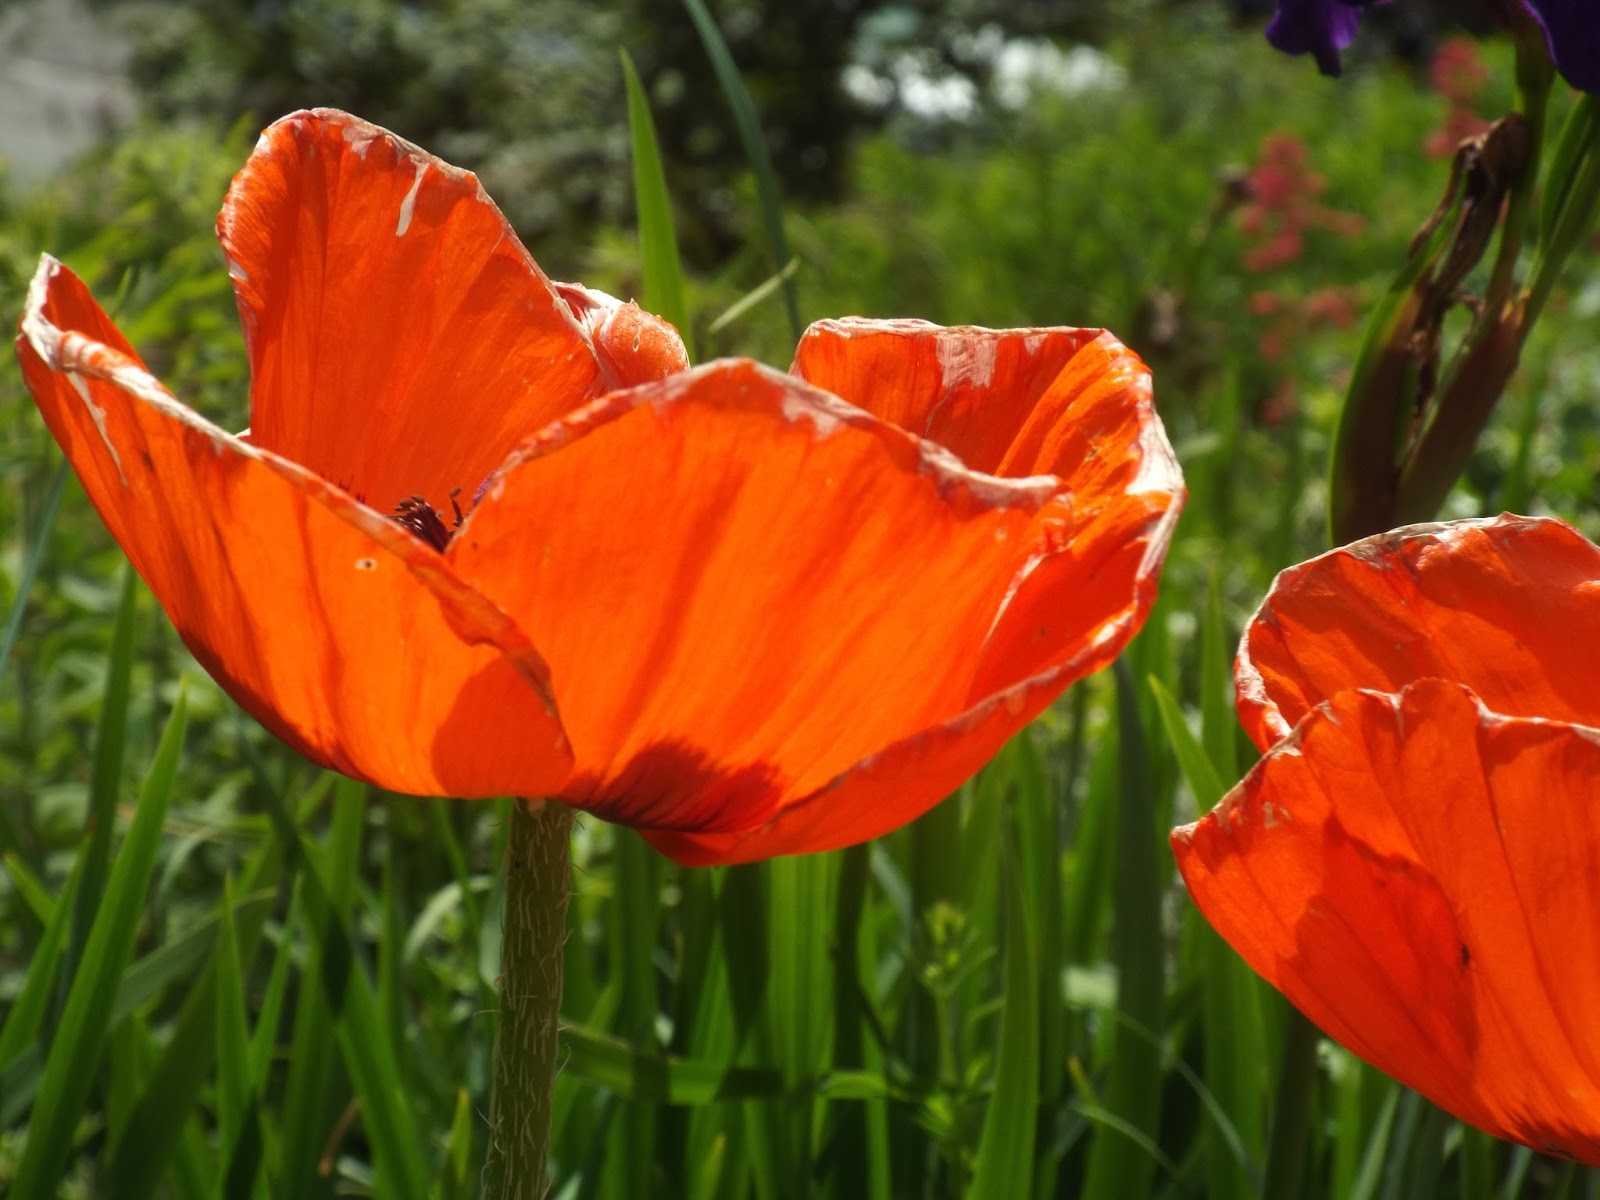 Caterpillar poetry poppies in july sylvia plaths poem poppies in july written in july 1962 and published posthumously in her famous 1965 collection ariel i have been thinking of the poem mightylinksfo